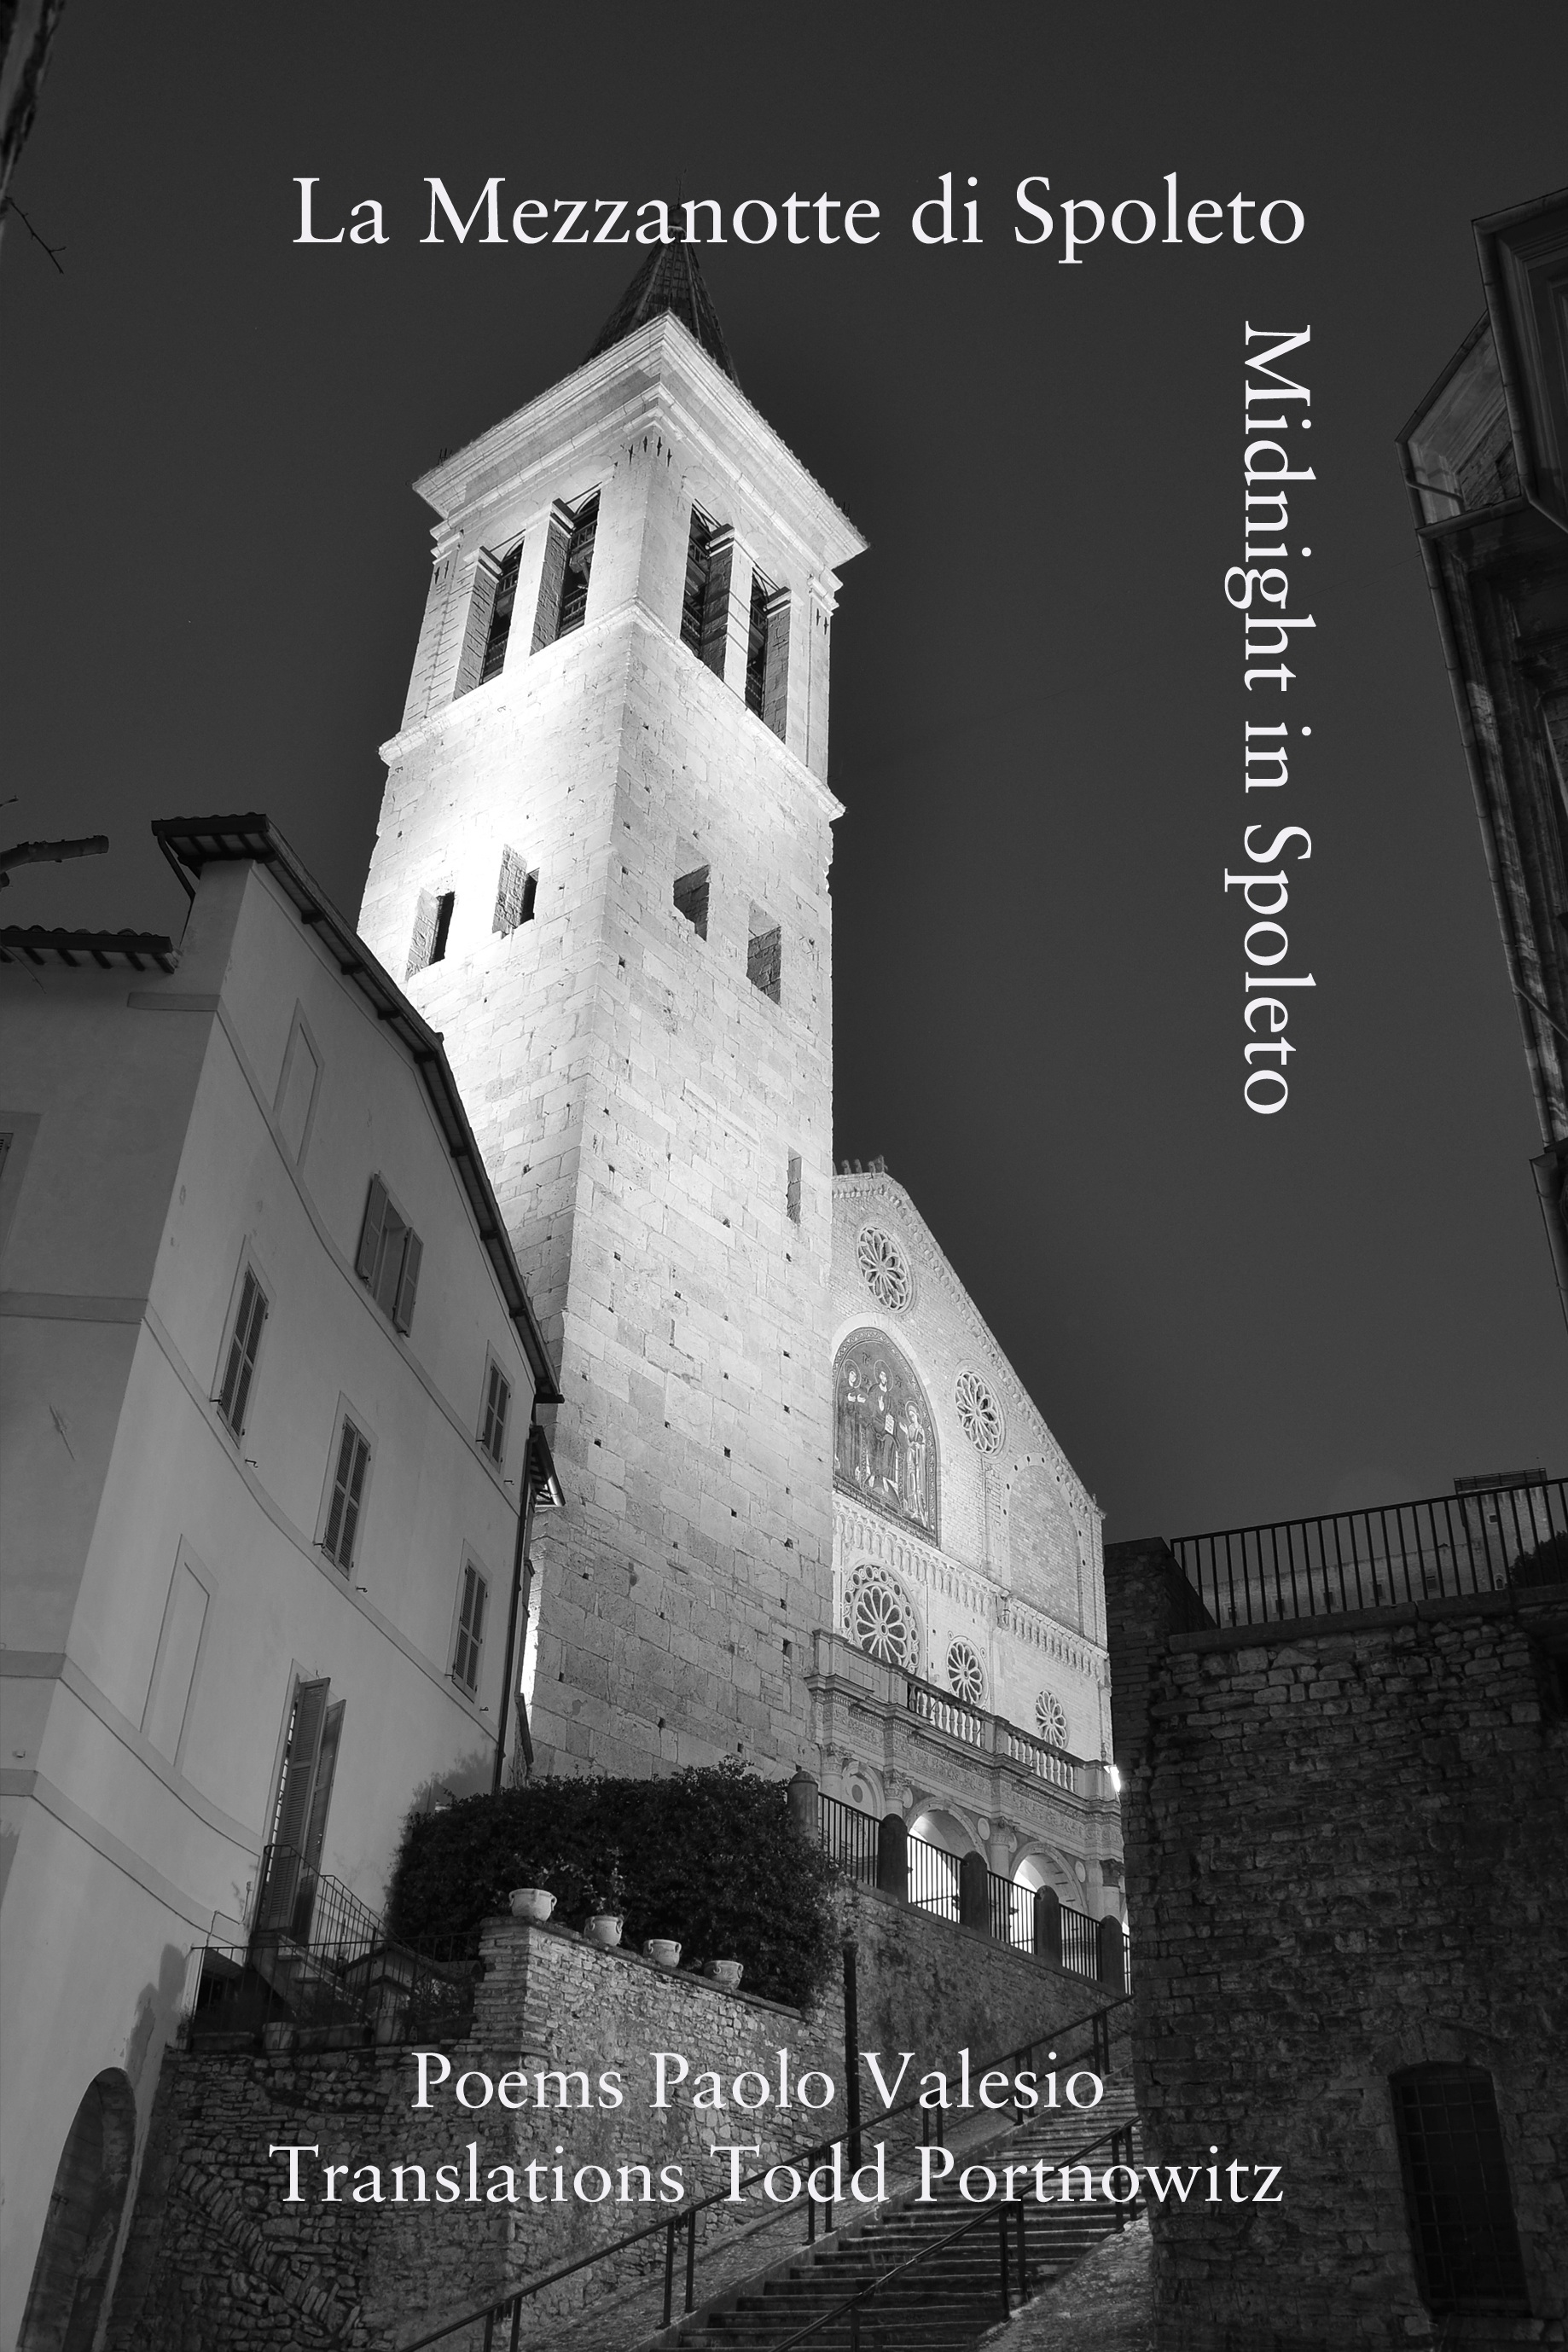 MIDNIGHT IN SPOLETO  by Paolo Valesio  Fomite  January 2018